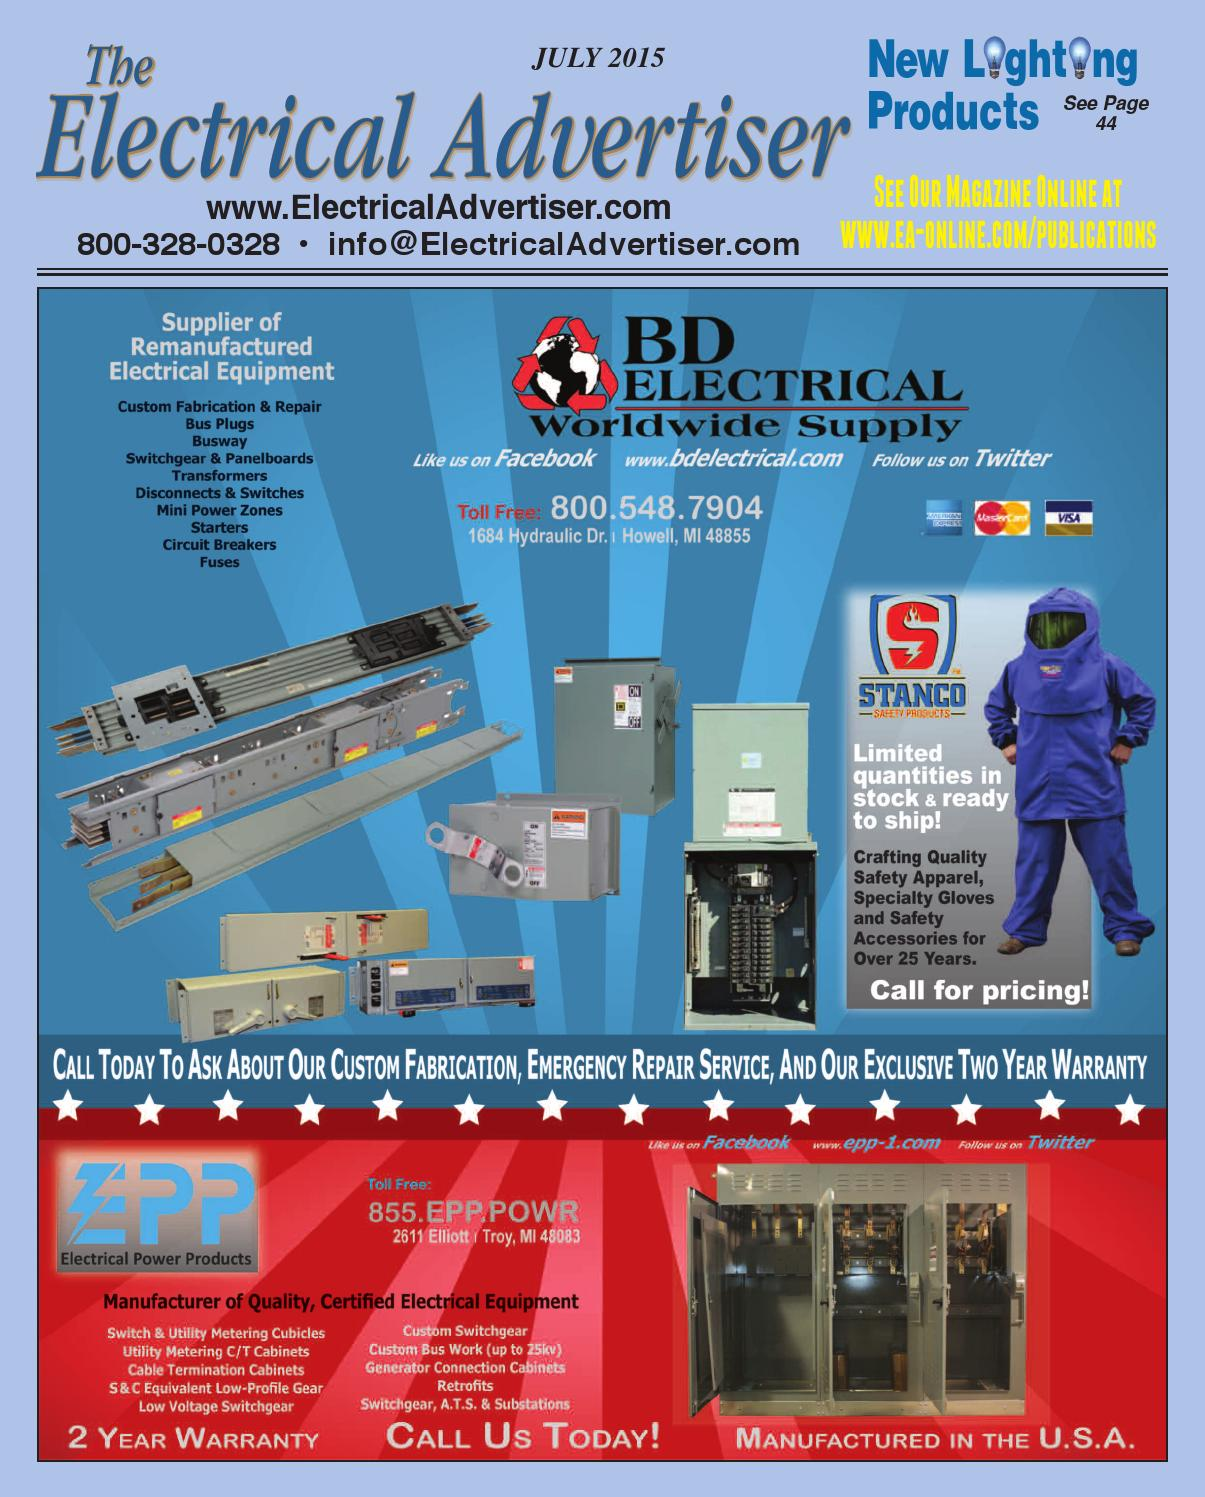 hight resolution of electrical advertiser july 2015